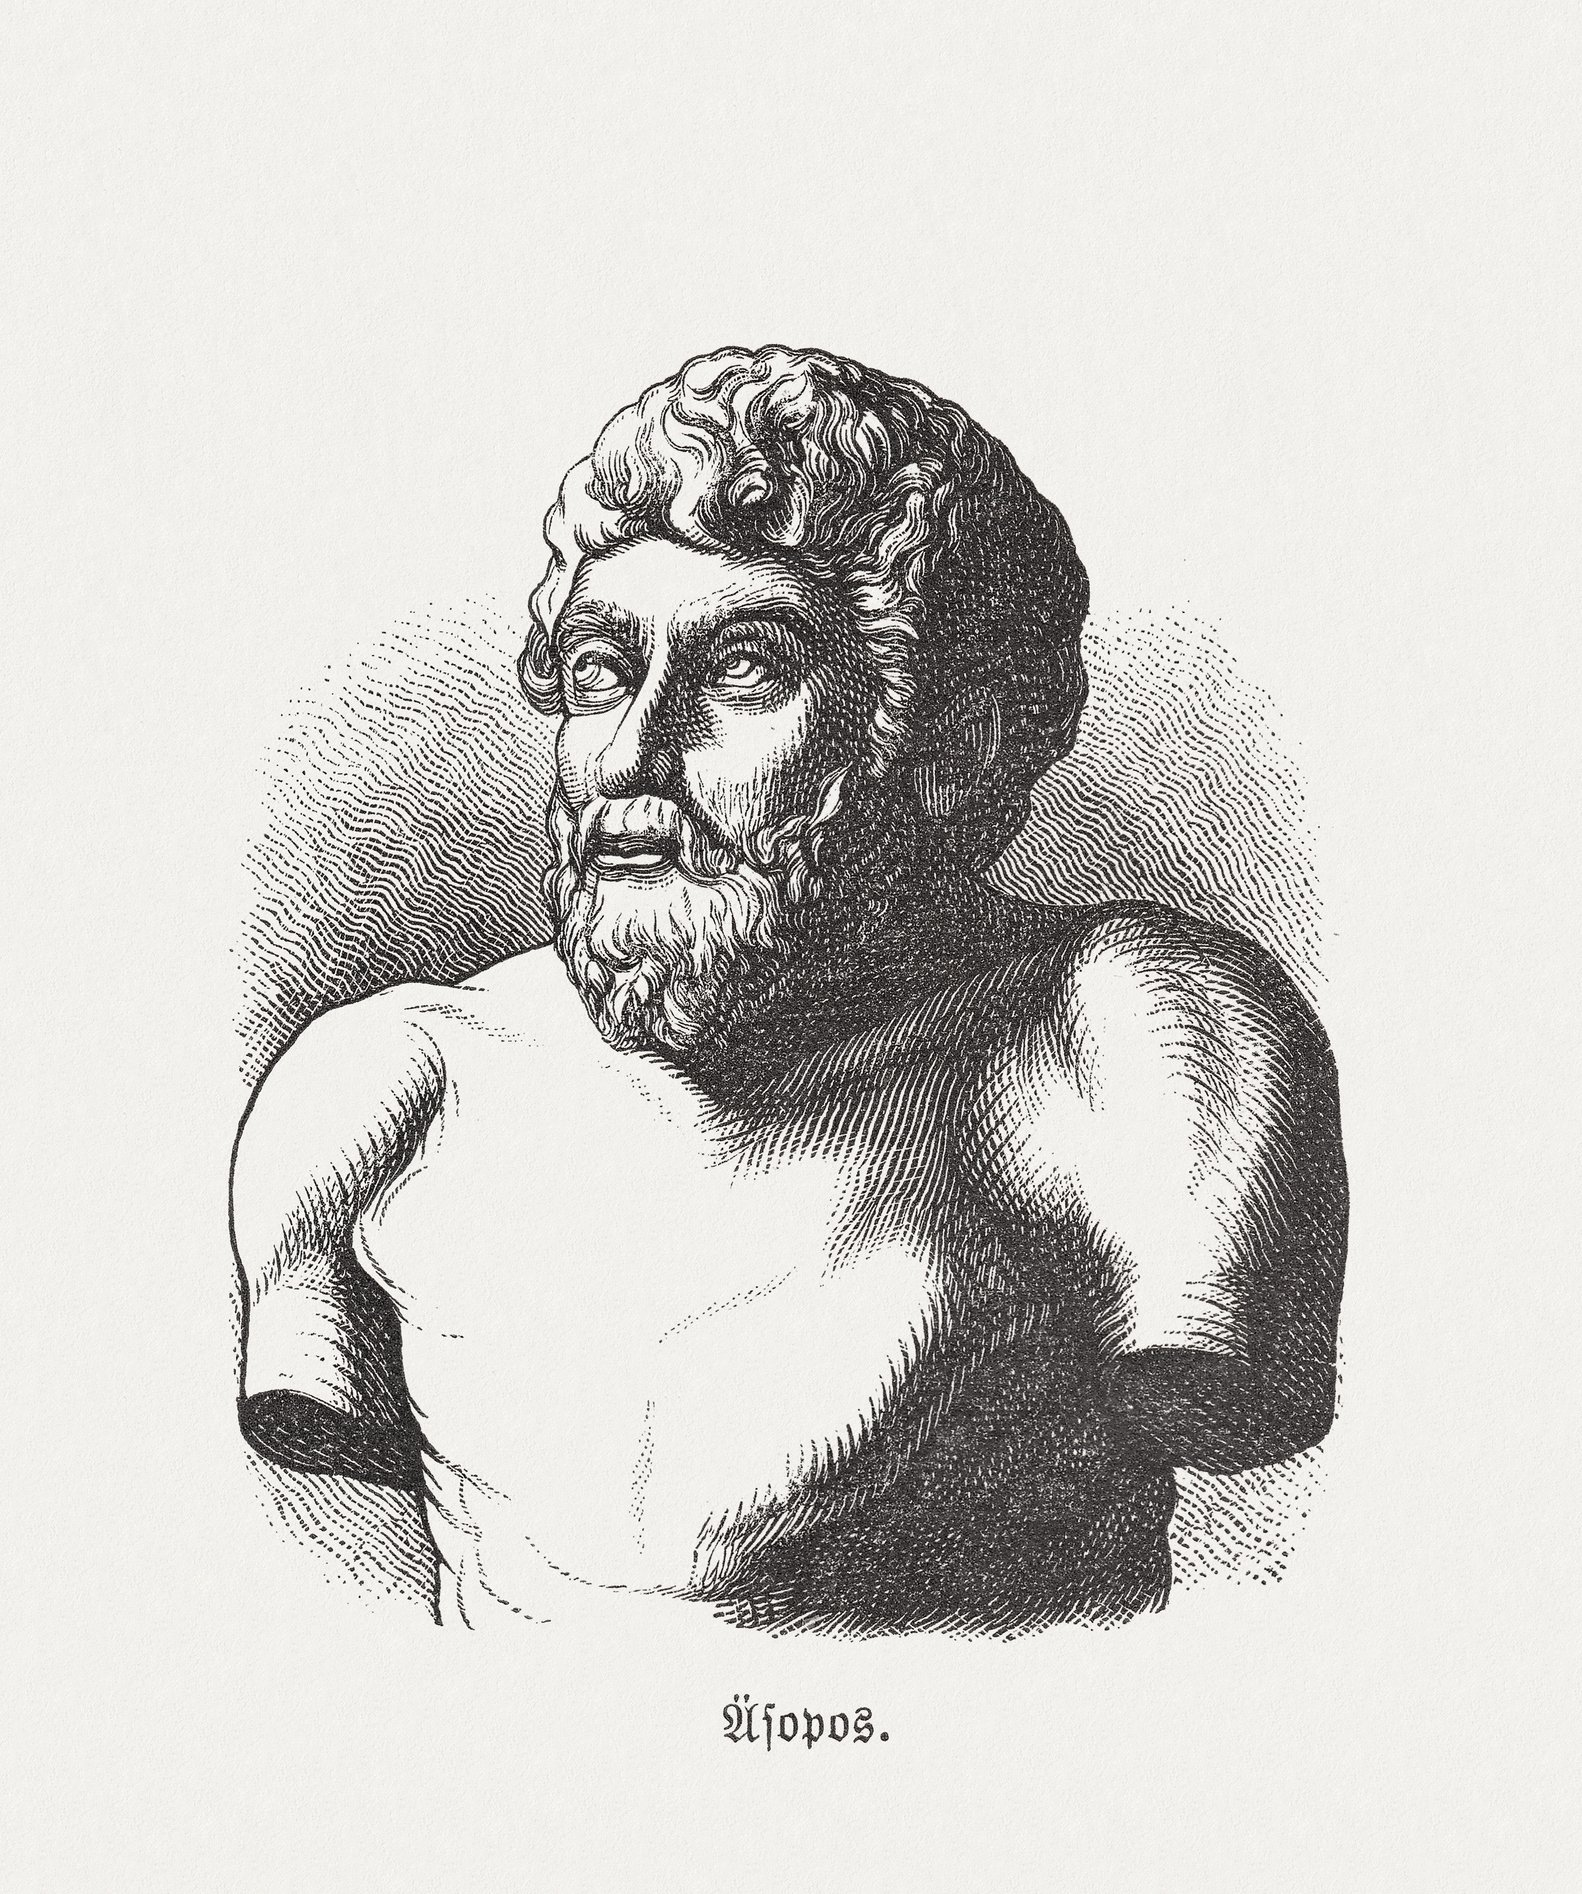 Wood engraving of Greek fabulist and storyteller Aesop (circa 620 B.C. - 564 B.C.) in the Collection of Villa Albani, Rome, Italy, published in 1893. (iStock Photo)